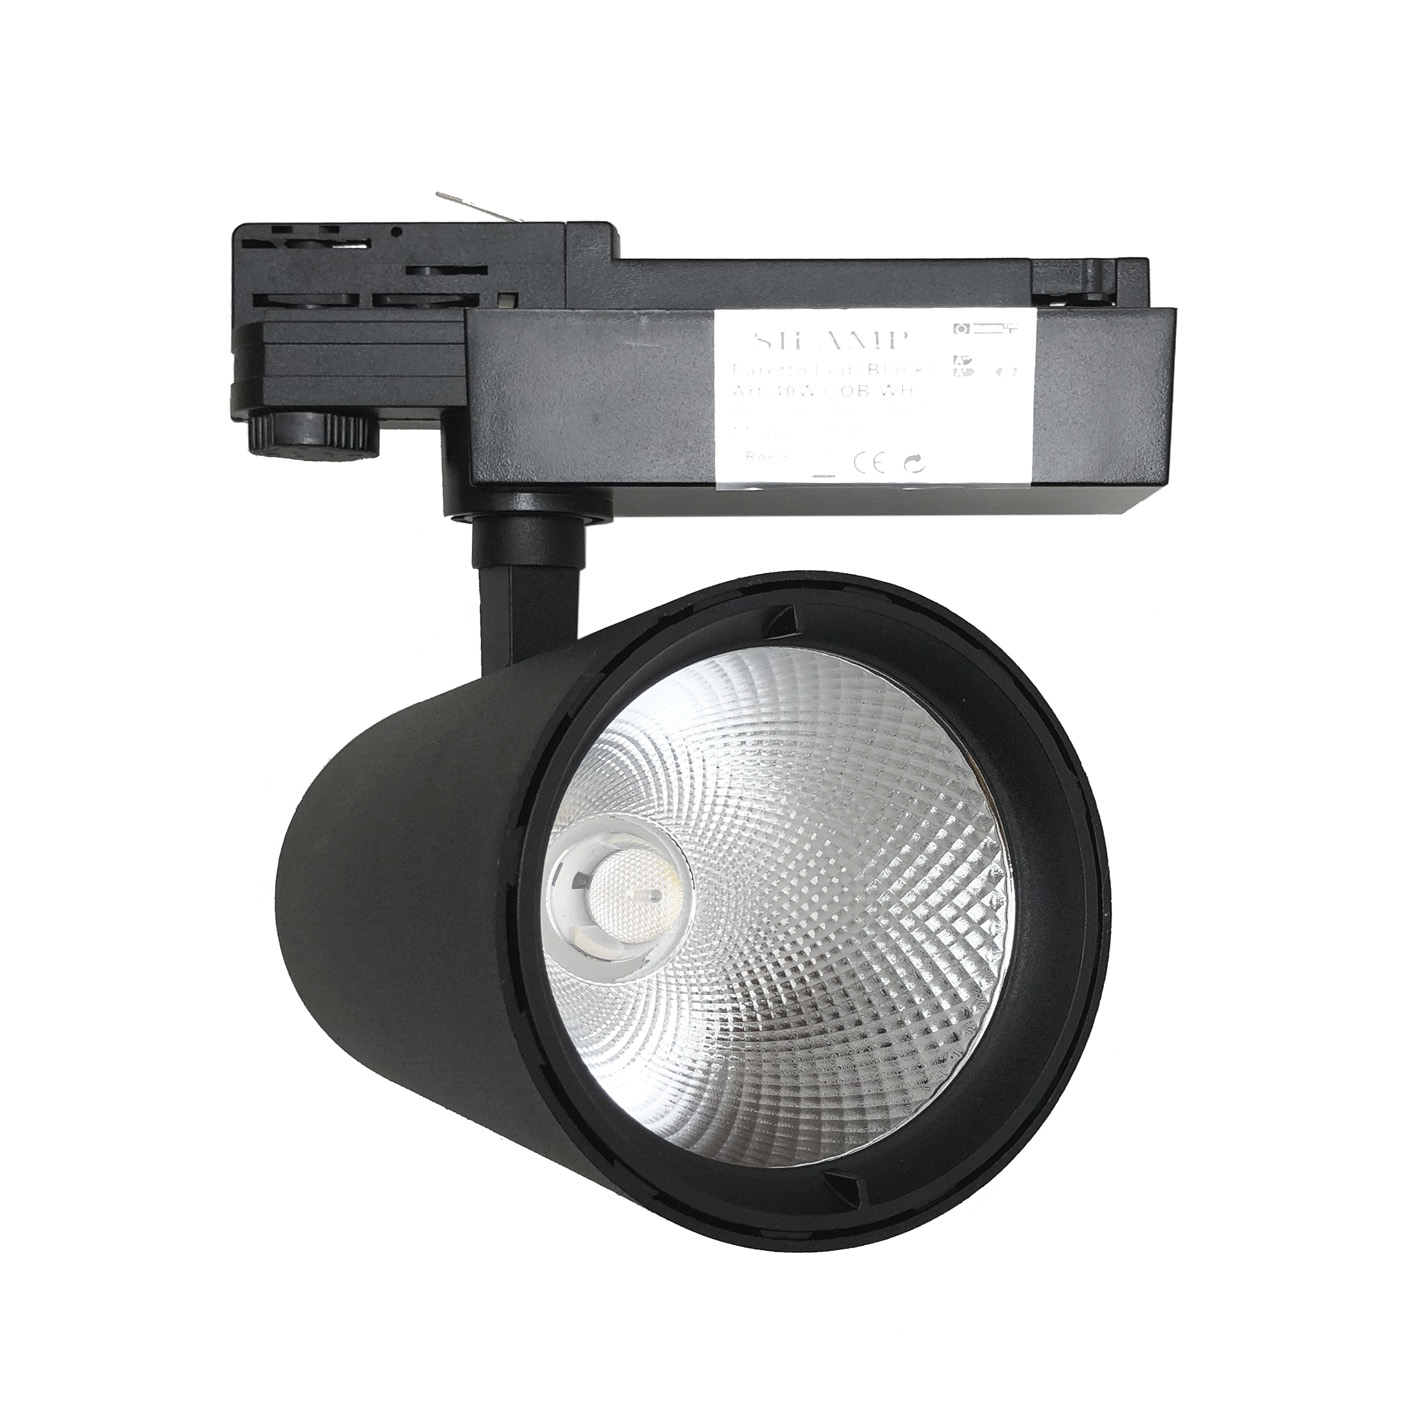 Faretto LED a binario 40w Trifase illuminazione a binario led faro COB FB-4-40W